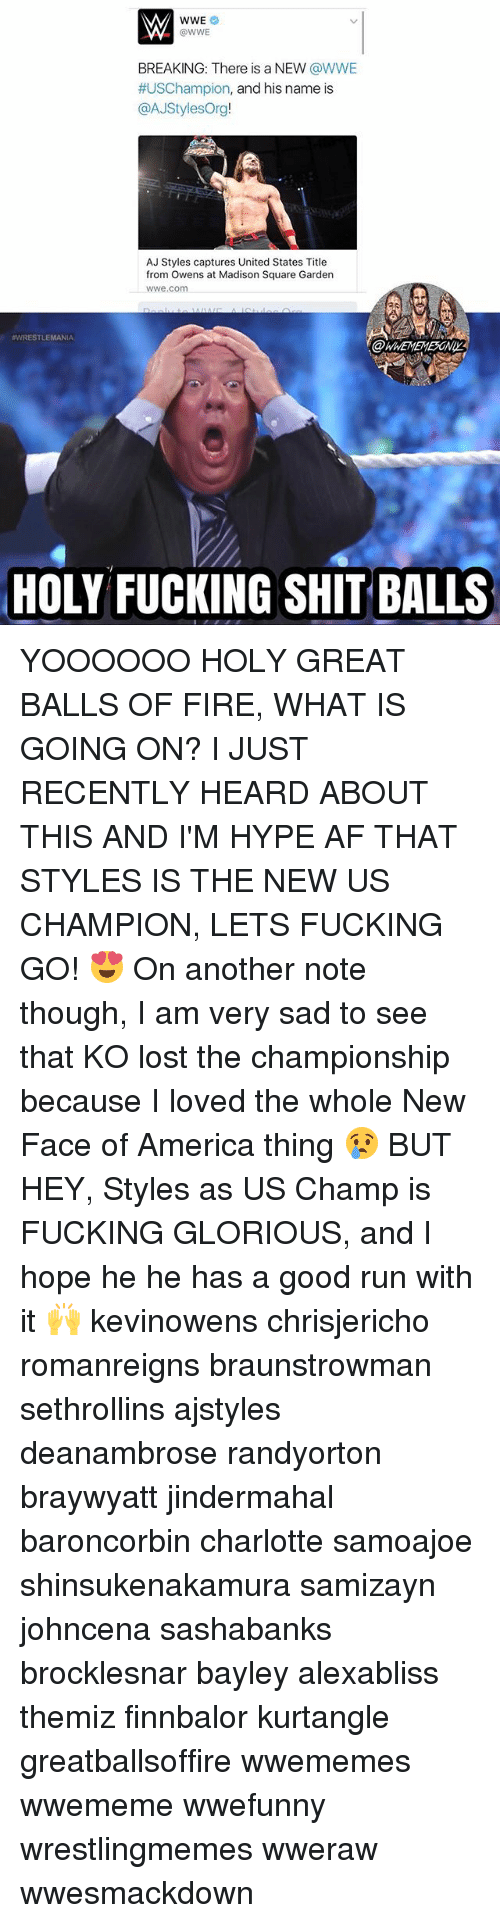 And His Name Is: @WWE  BREAKING: There is a NEW @WWE  #USChampion, and his name is  @AJStylesOrg!  AJ Styles captures United States Title  from Owens at Madison Square Garden  wwe.com  WRESTLEMANIA  OWWEMEMESONIY  HOLY FUCKING SHIT BALLS YOOOOOO HOLY GREAT BALLS OF FIRE, WHAT IS GOING ON? I JUST RECENTLY HEARD ABOUT THIS AND I'M HYPE AF THAT STYLES IS THE NEW US CHAMPION, LETS FUCKING GO! 😍 On another note though, I am very sad to see that KO lost the championship because I loved the whole New Face of America thing 😢 BUT HEY, Styles as US Champ is FUCKING GLORIOUS, and I hope he he has a good run with it 🙌 kevinowens chrisjericho romanreigns braunstrowman sethrollins ajstyles deanambrose randyorton braywyatt jindermahal baroncorbin charlotte samoajoe shinsukenakamura samizayn johncena sashabanks brocklesnar bayley alexabliss themiz finnbalor kurtangle greatballsoffire wwememes wwememe wwefunny wrestlingmemes wweraw wwesmackdown